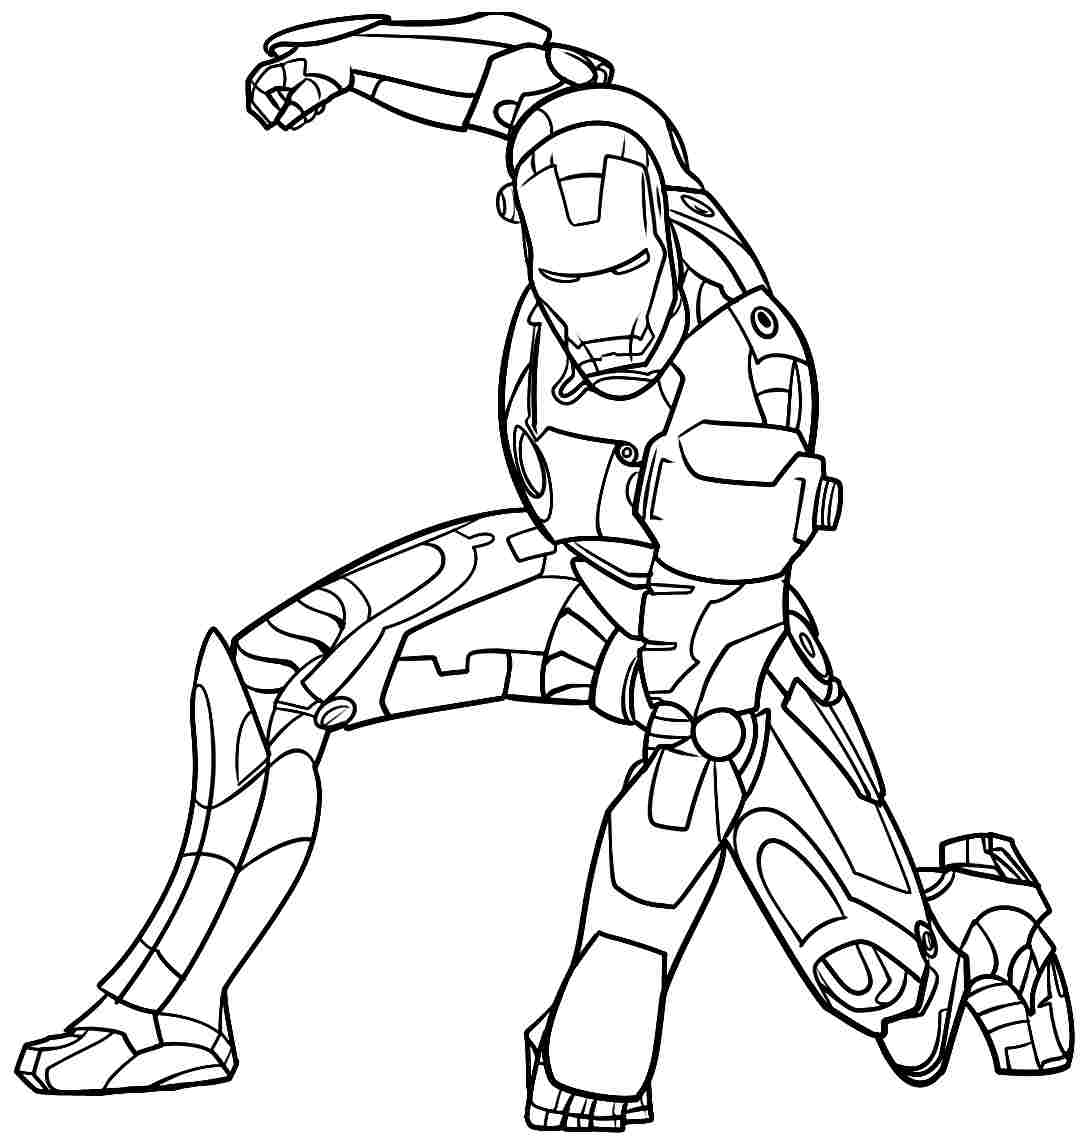 ironman coloring pages to download and print for free